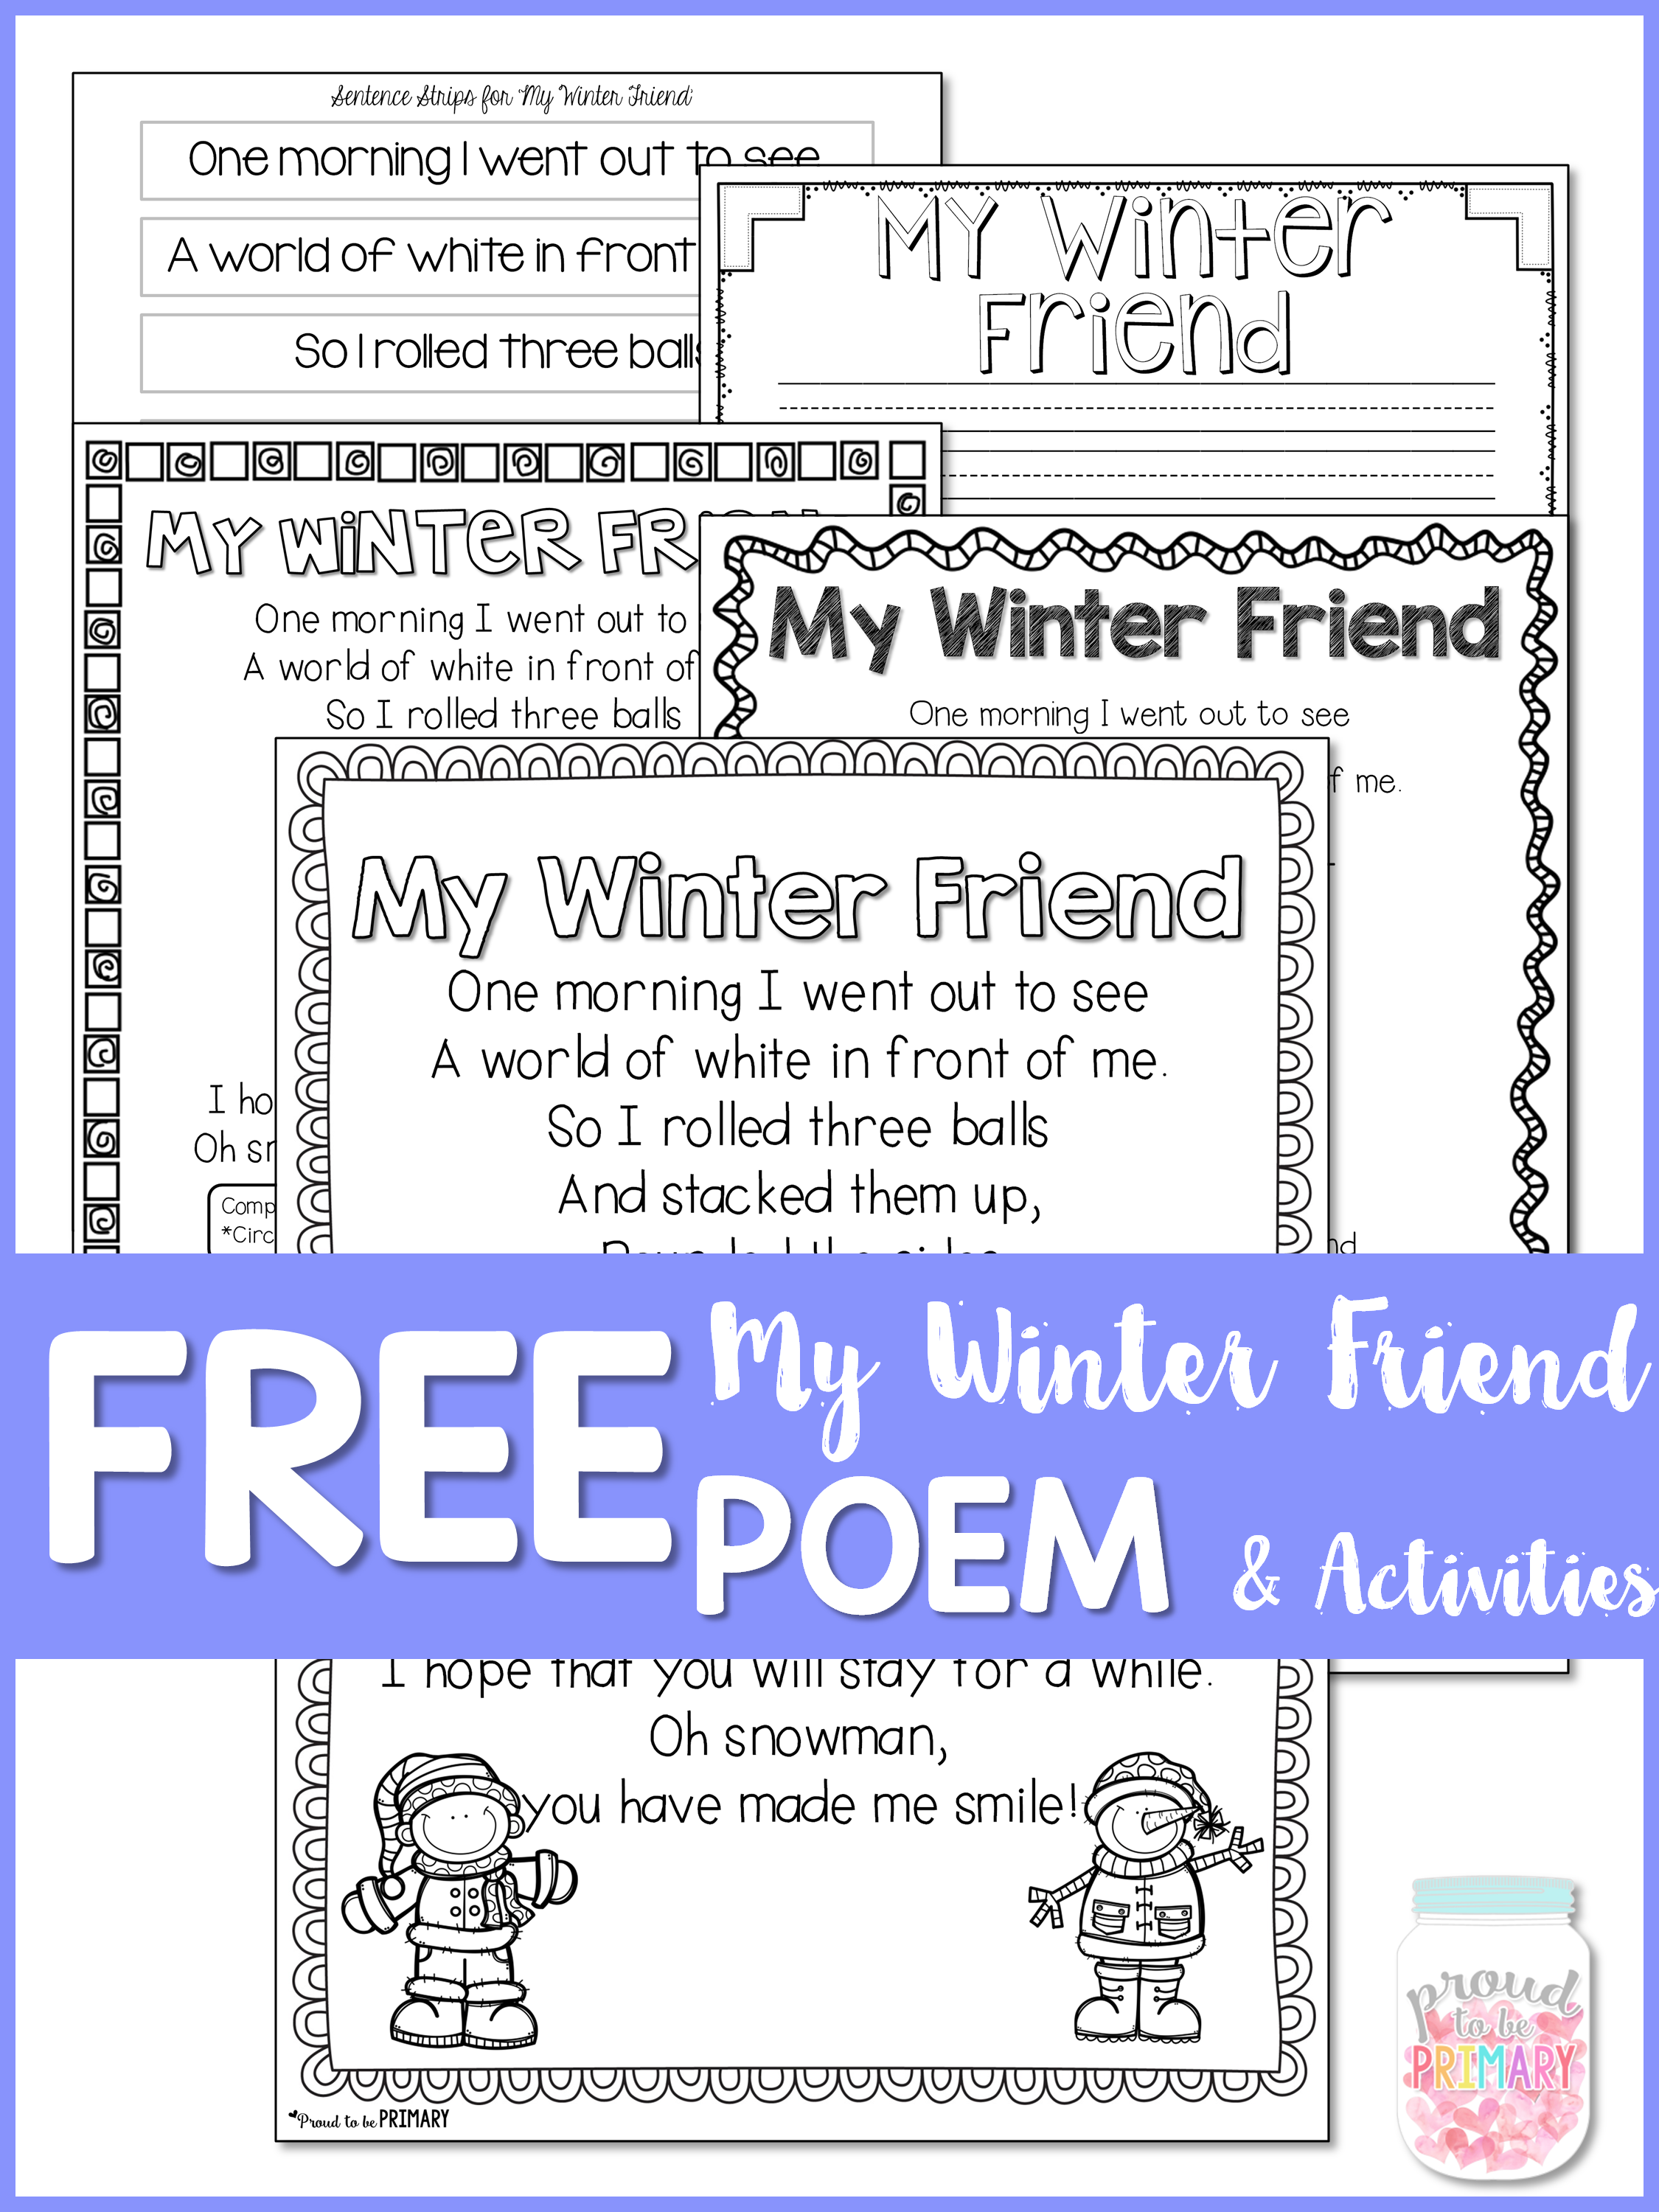 poetry activities - free poem activities - my winter friend